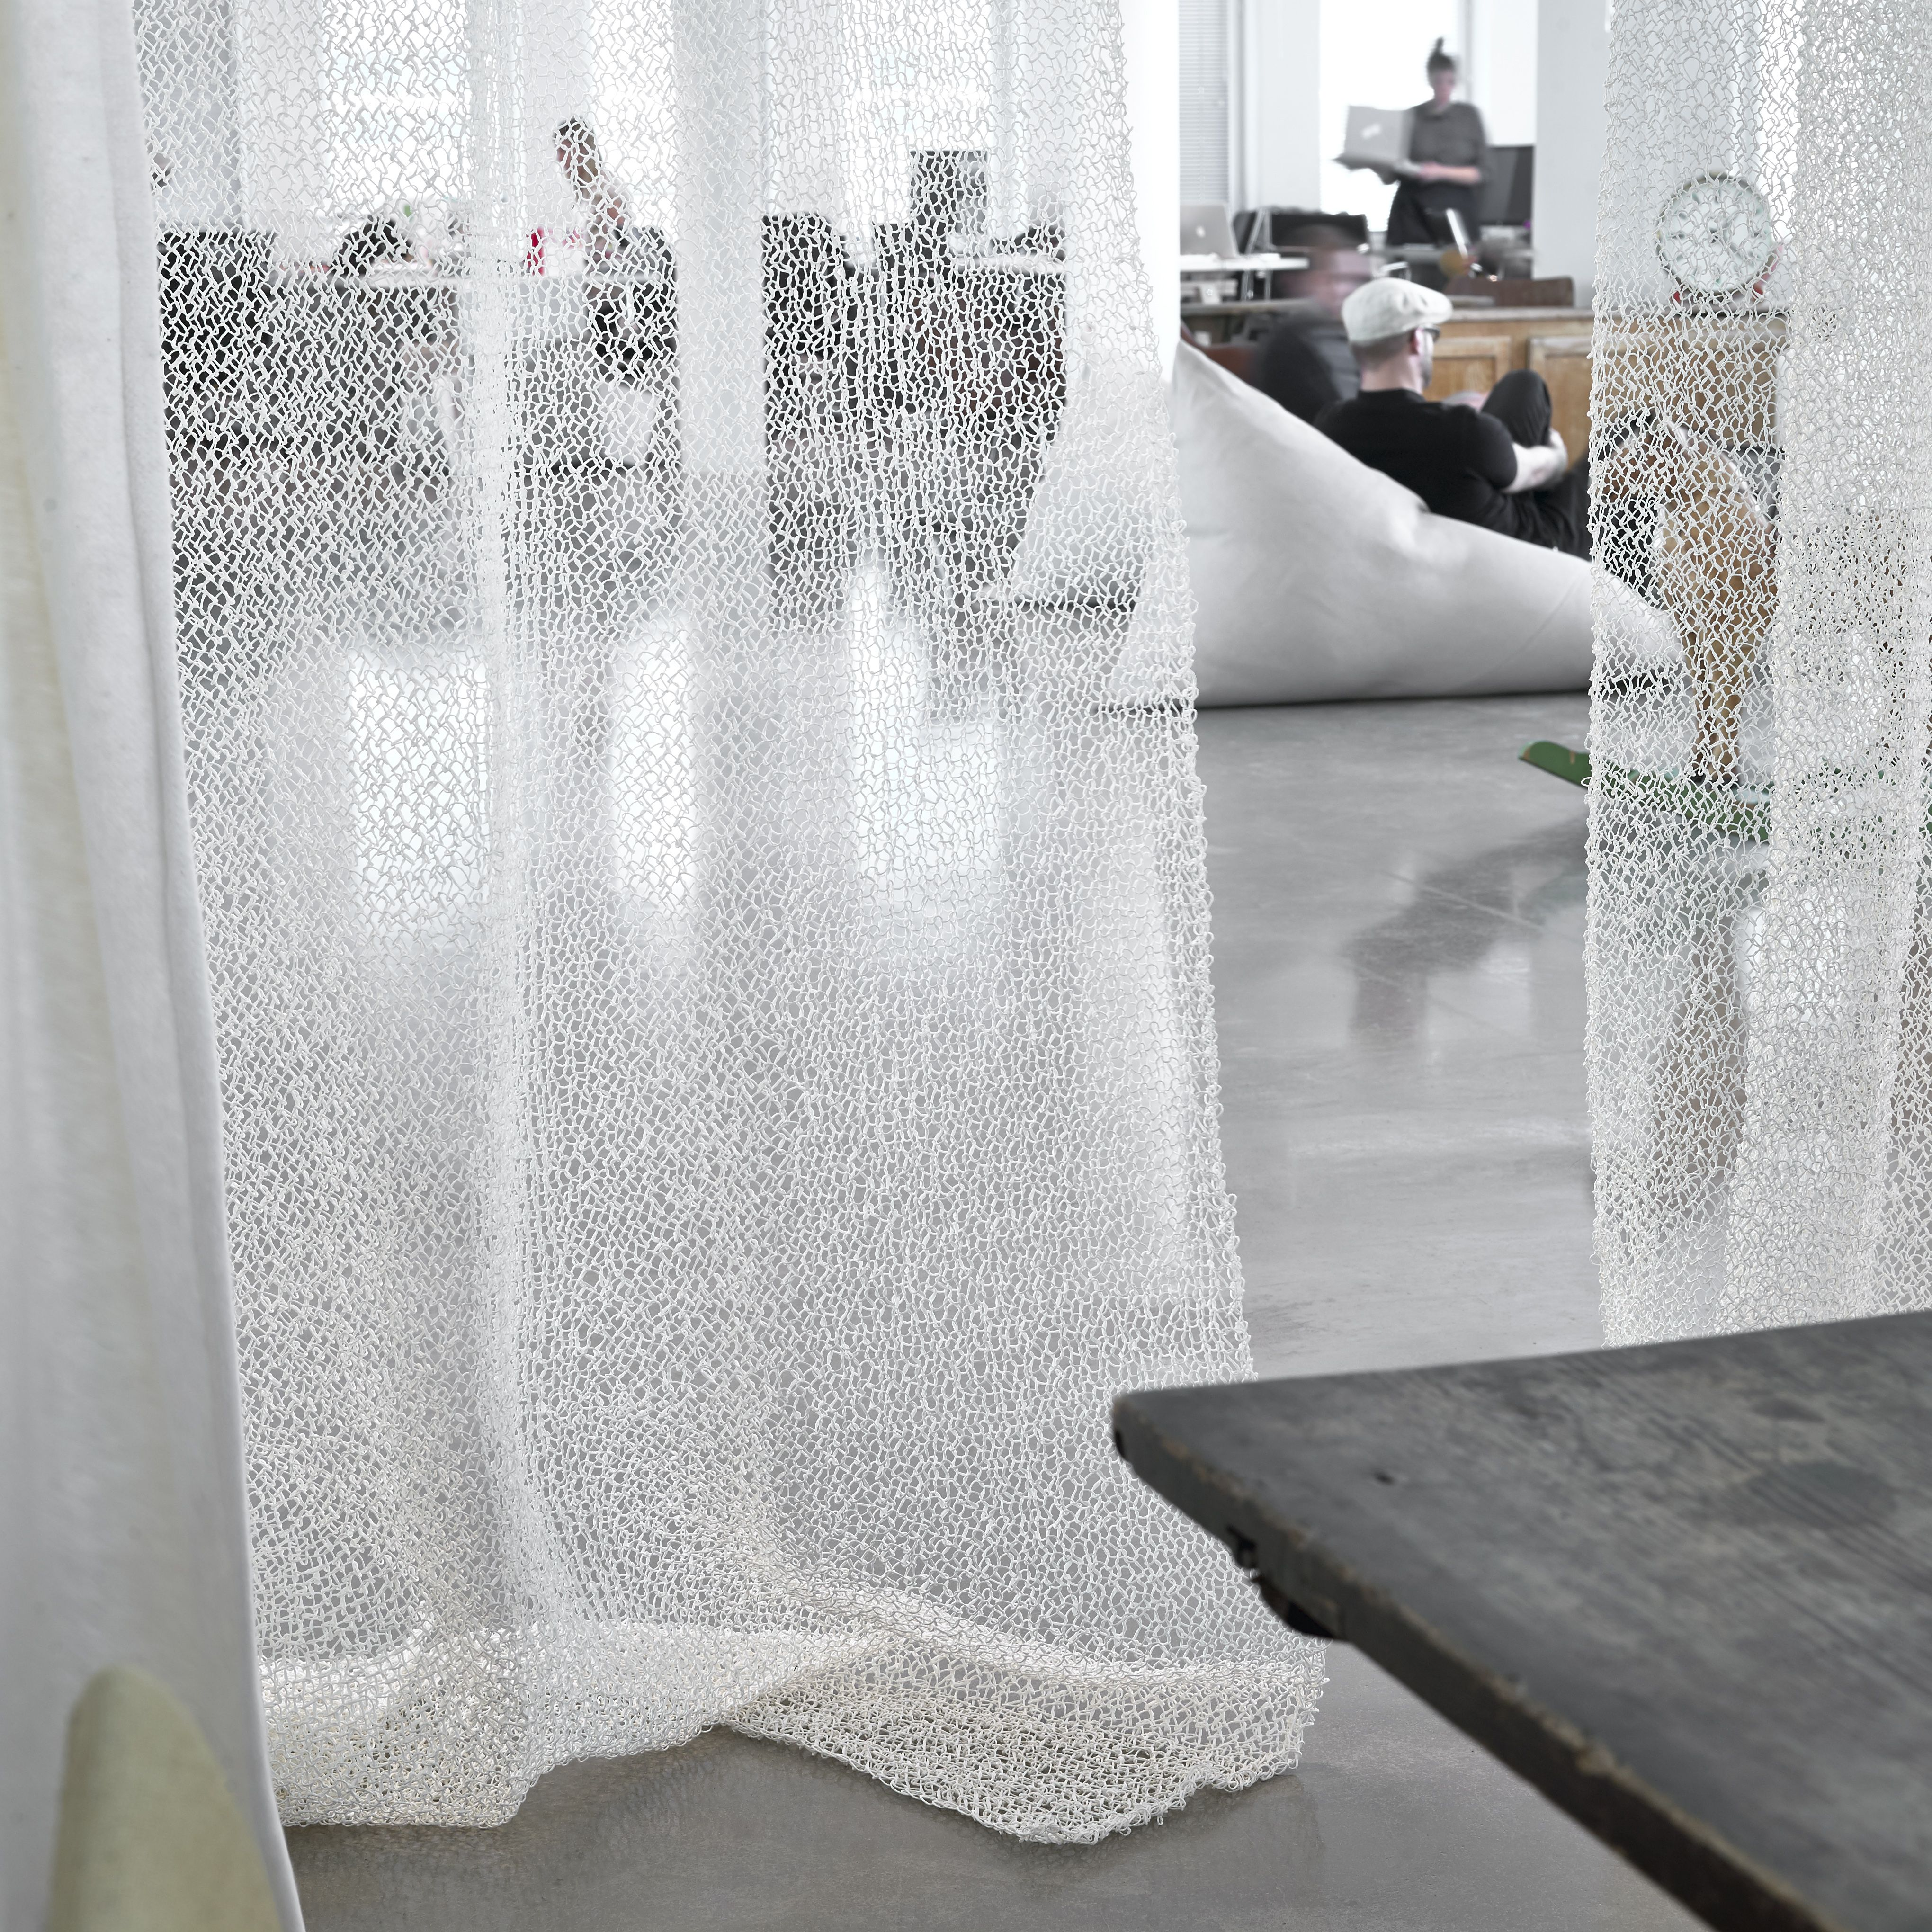 pieces from or good cm ivory lace curtains lovely panel rod two of white quality with drapes knitted x curtain photo textilefamily pocket rose jacquard